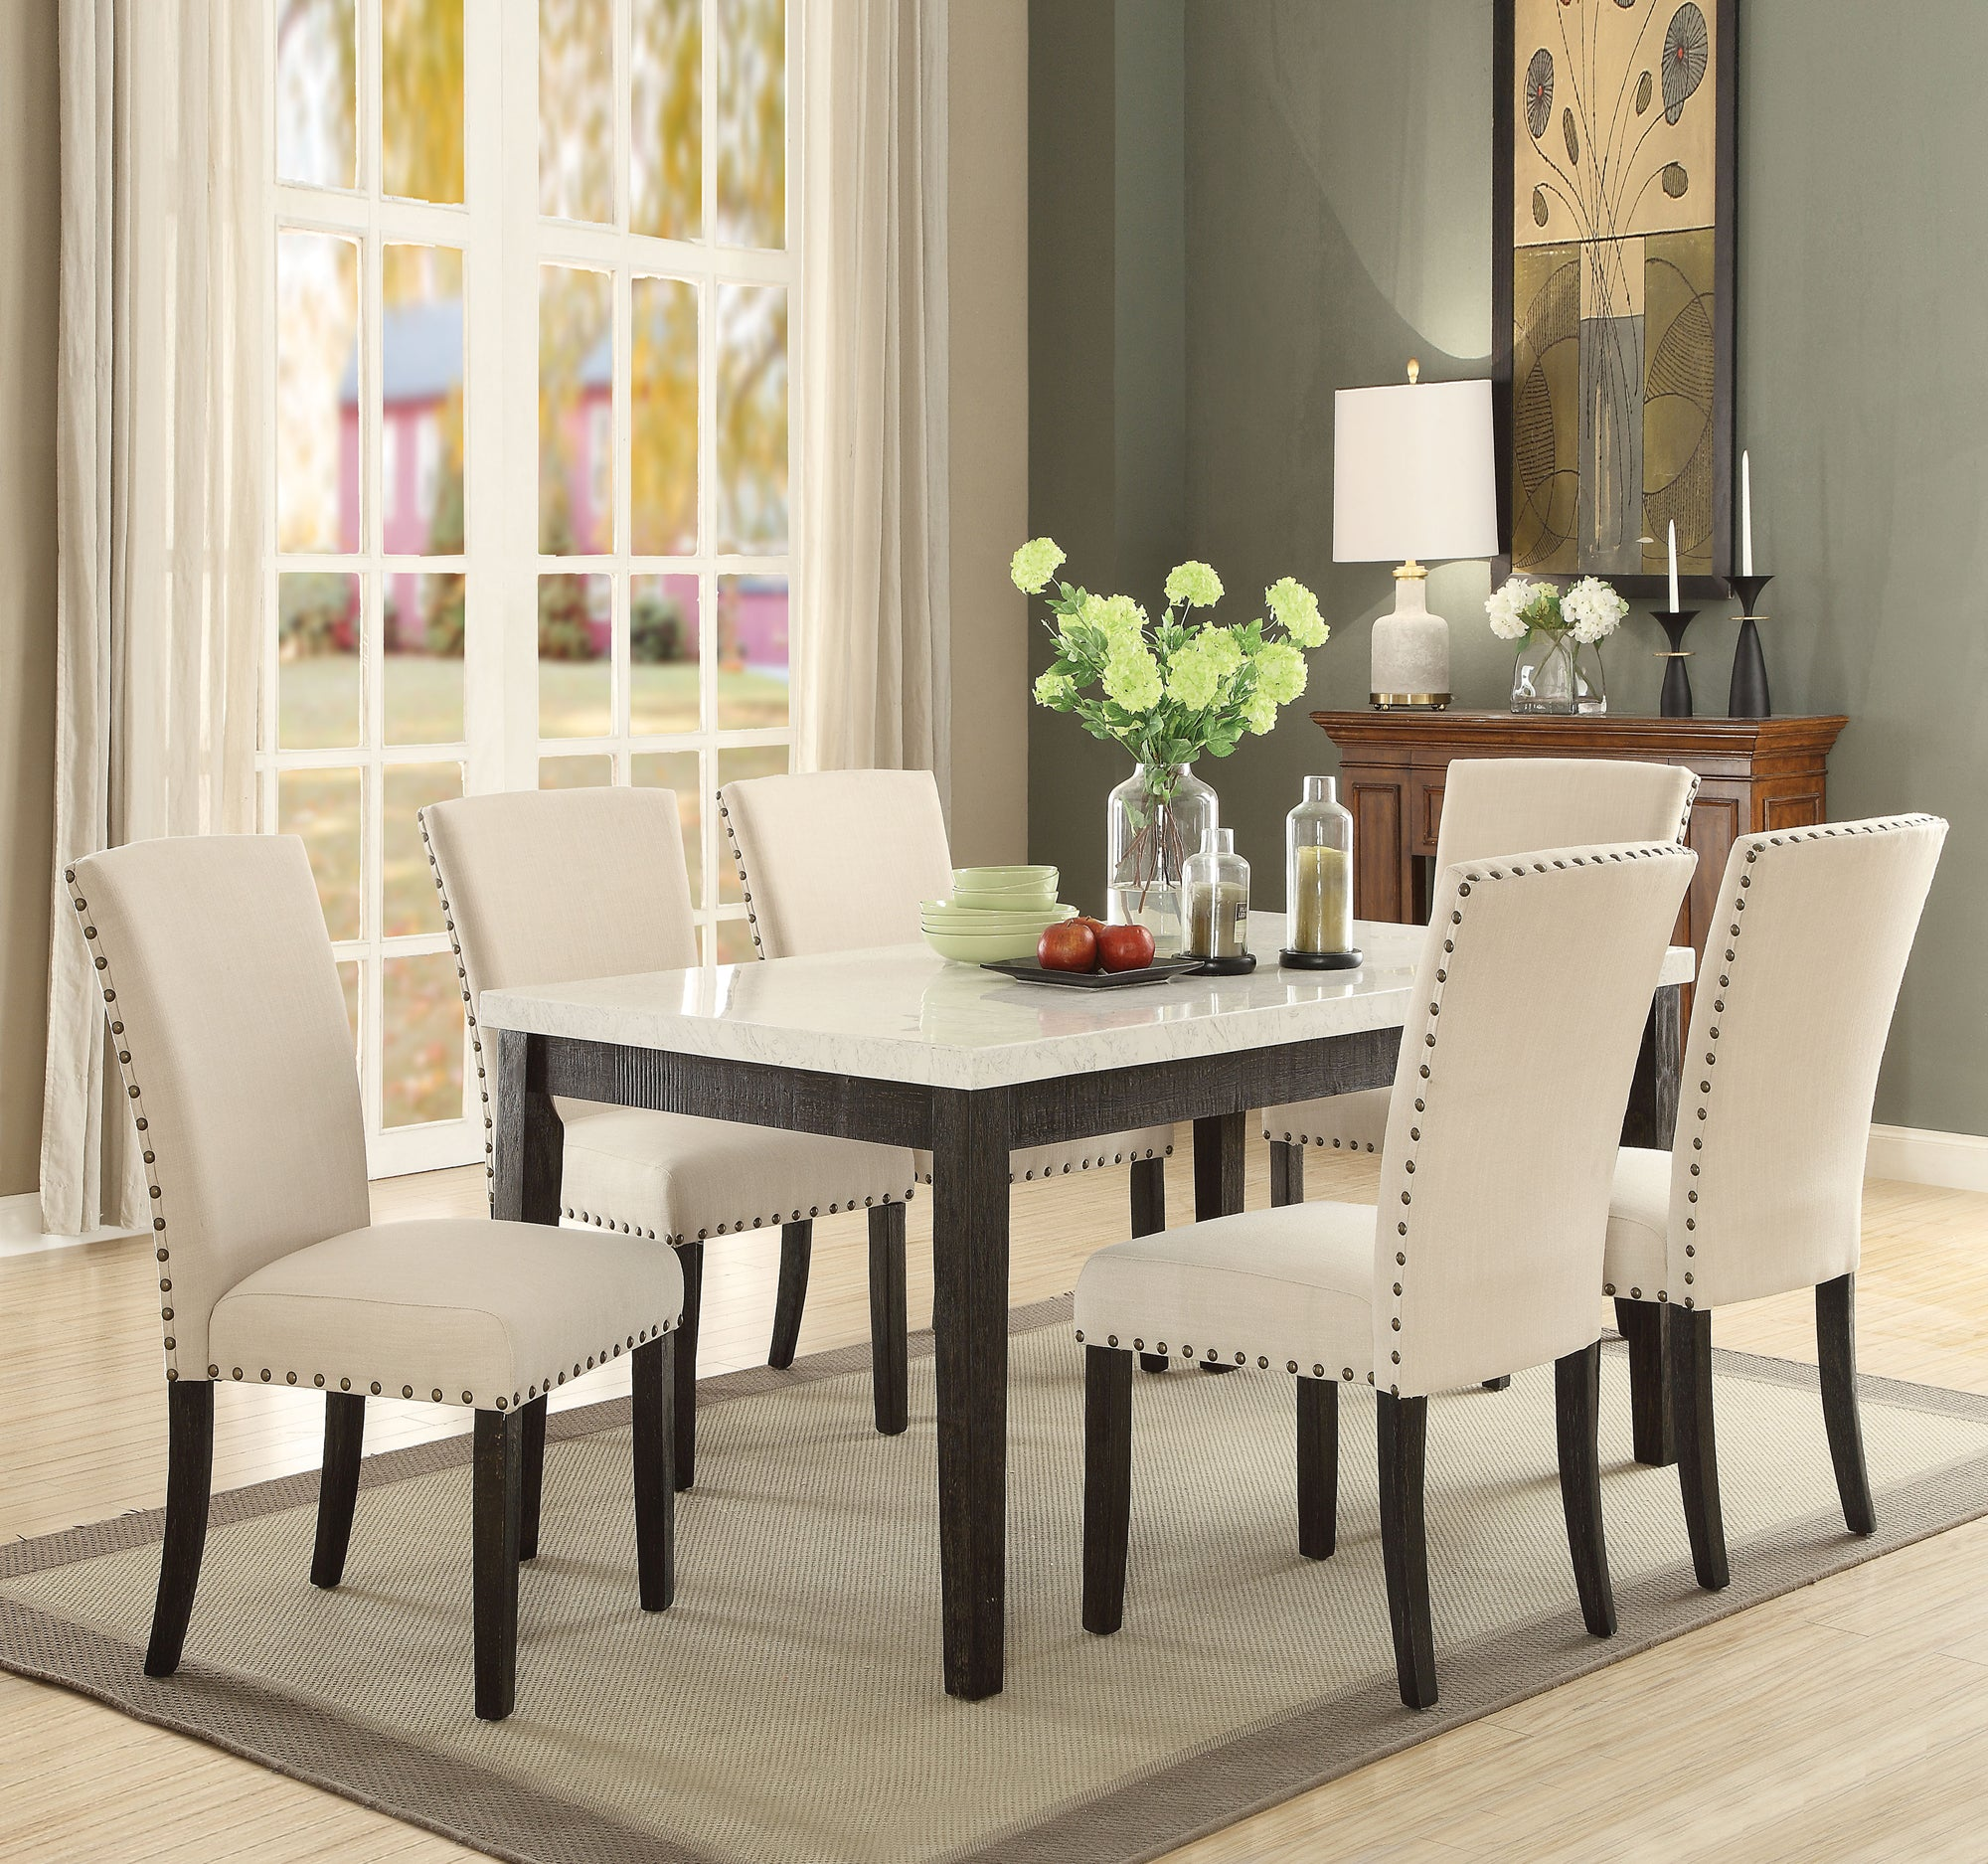 Terrific Acme 72850 Nolan 7 Pieces White Faux Marble Top Dining Table Set Home Interior And Landscaping Ologienasavecom